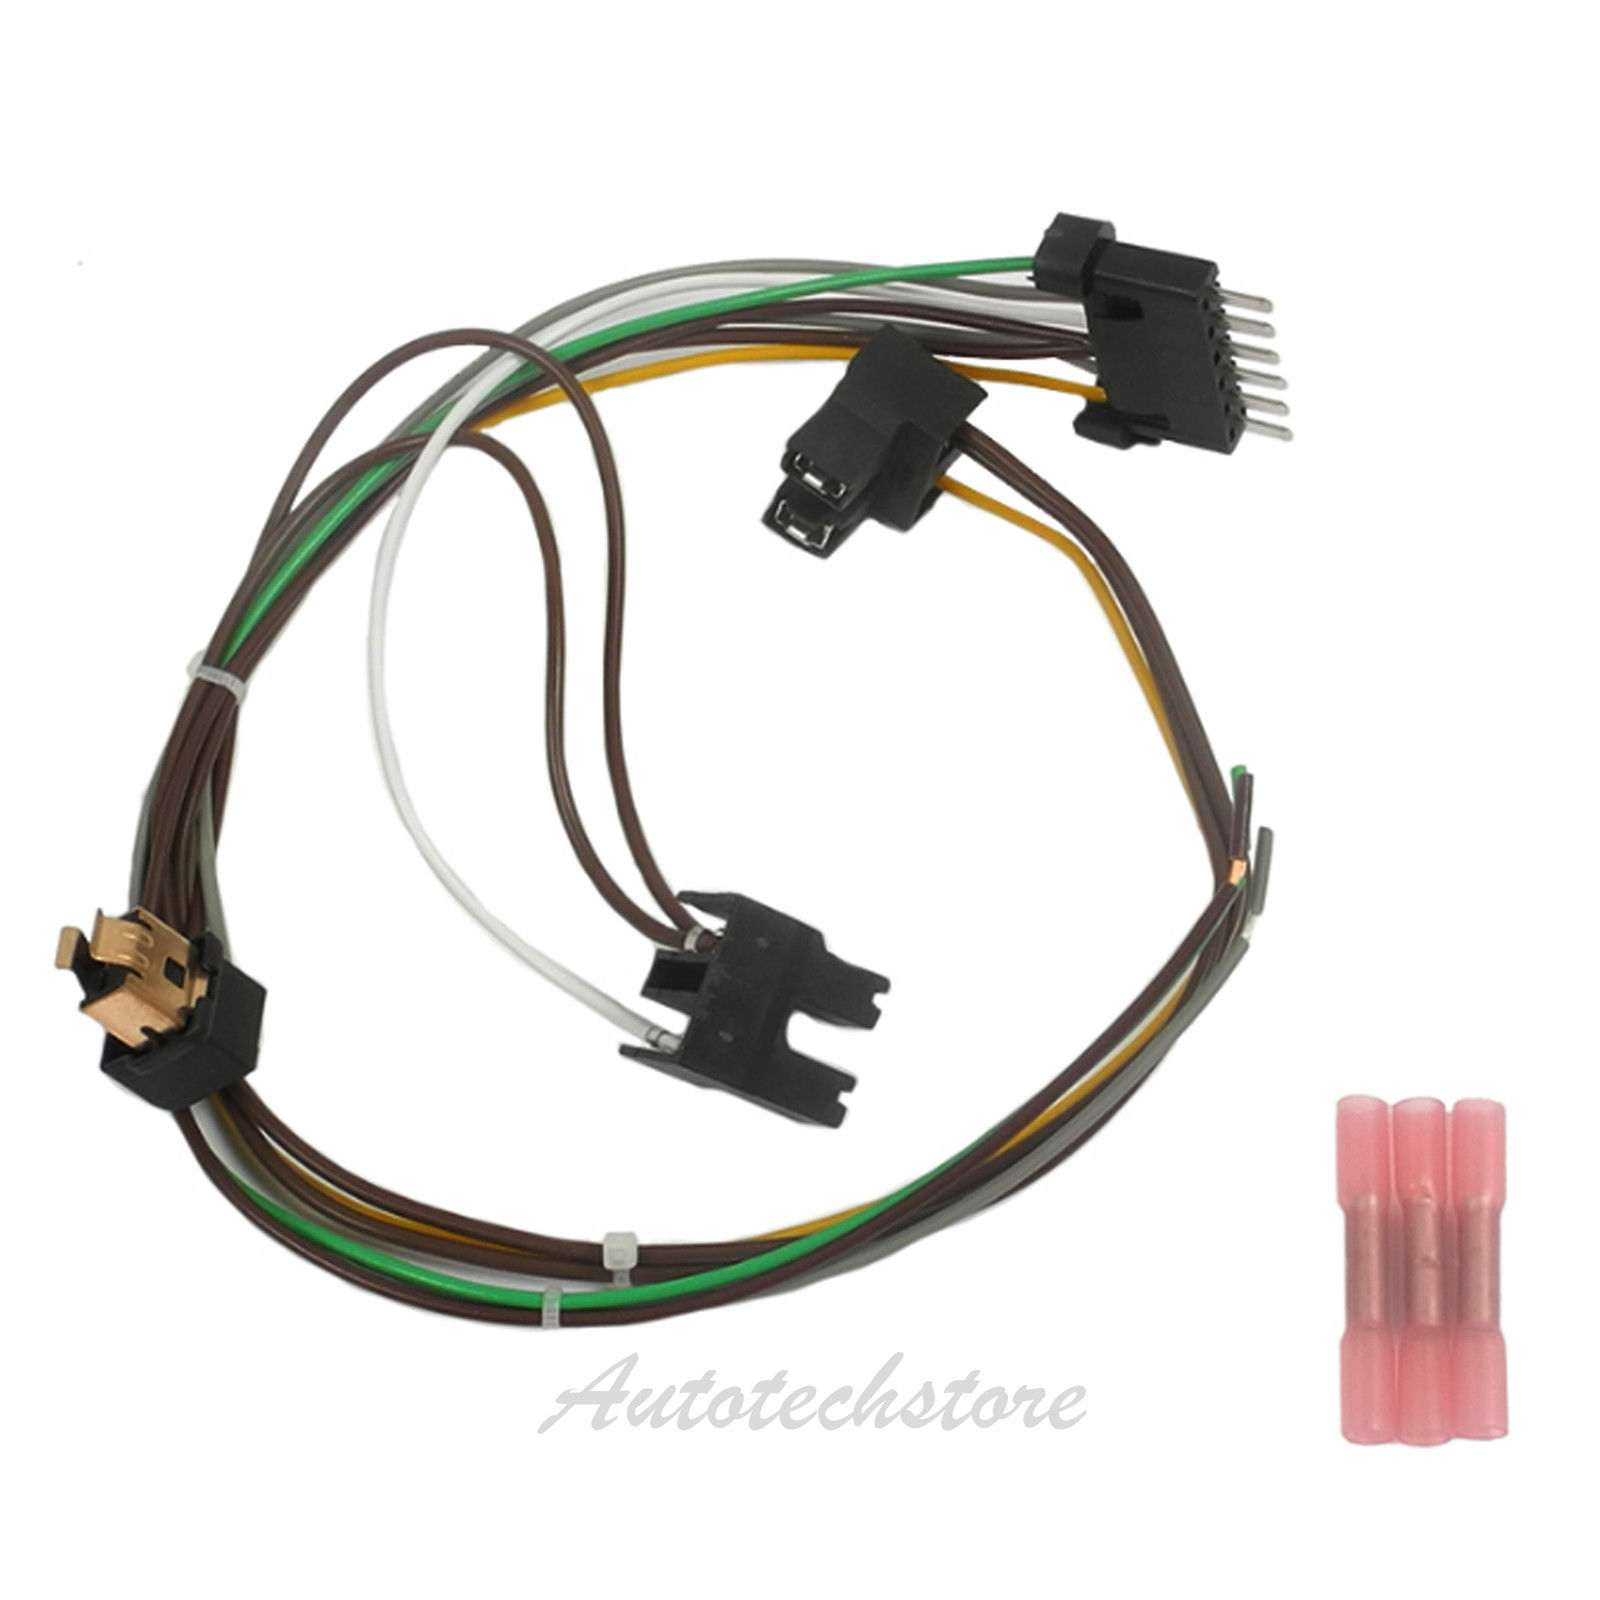 right headlight wiring harness repair kit for 00 02 w220 s430 s600 rh ebay com Engine Wiring Harness Repair Ford Wire Harness Repair